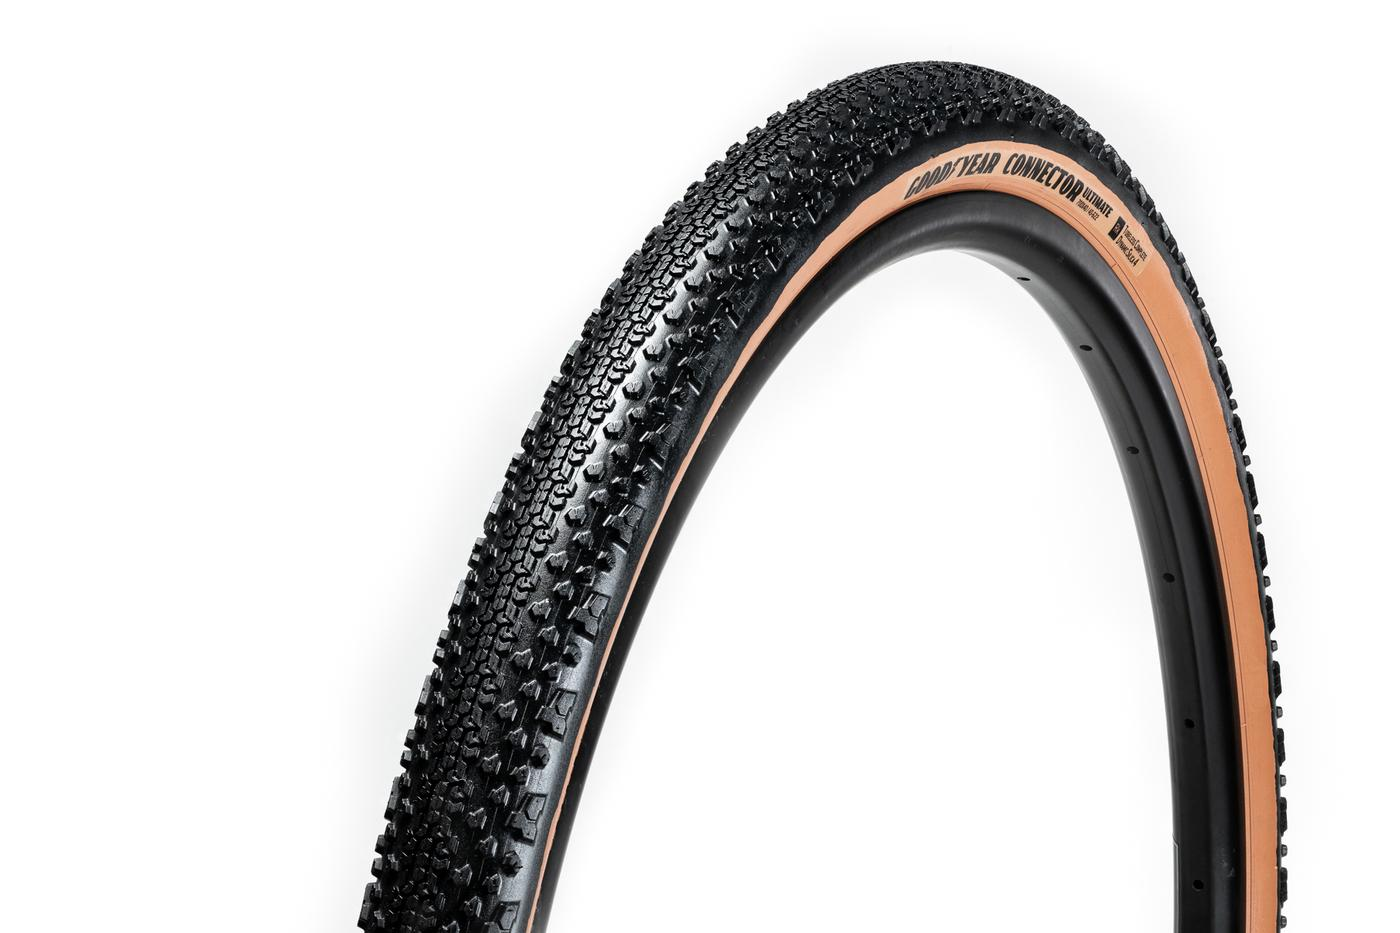 GoodYear's Bike Tires Expand into Gravel: the Connector Tire